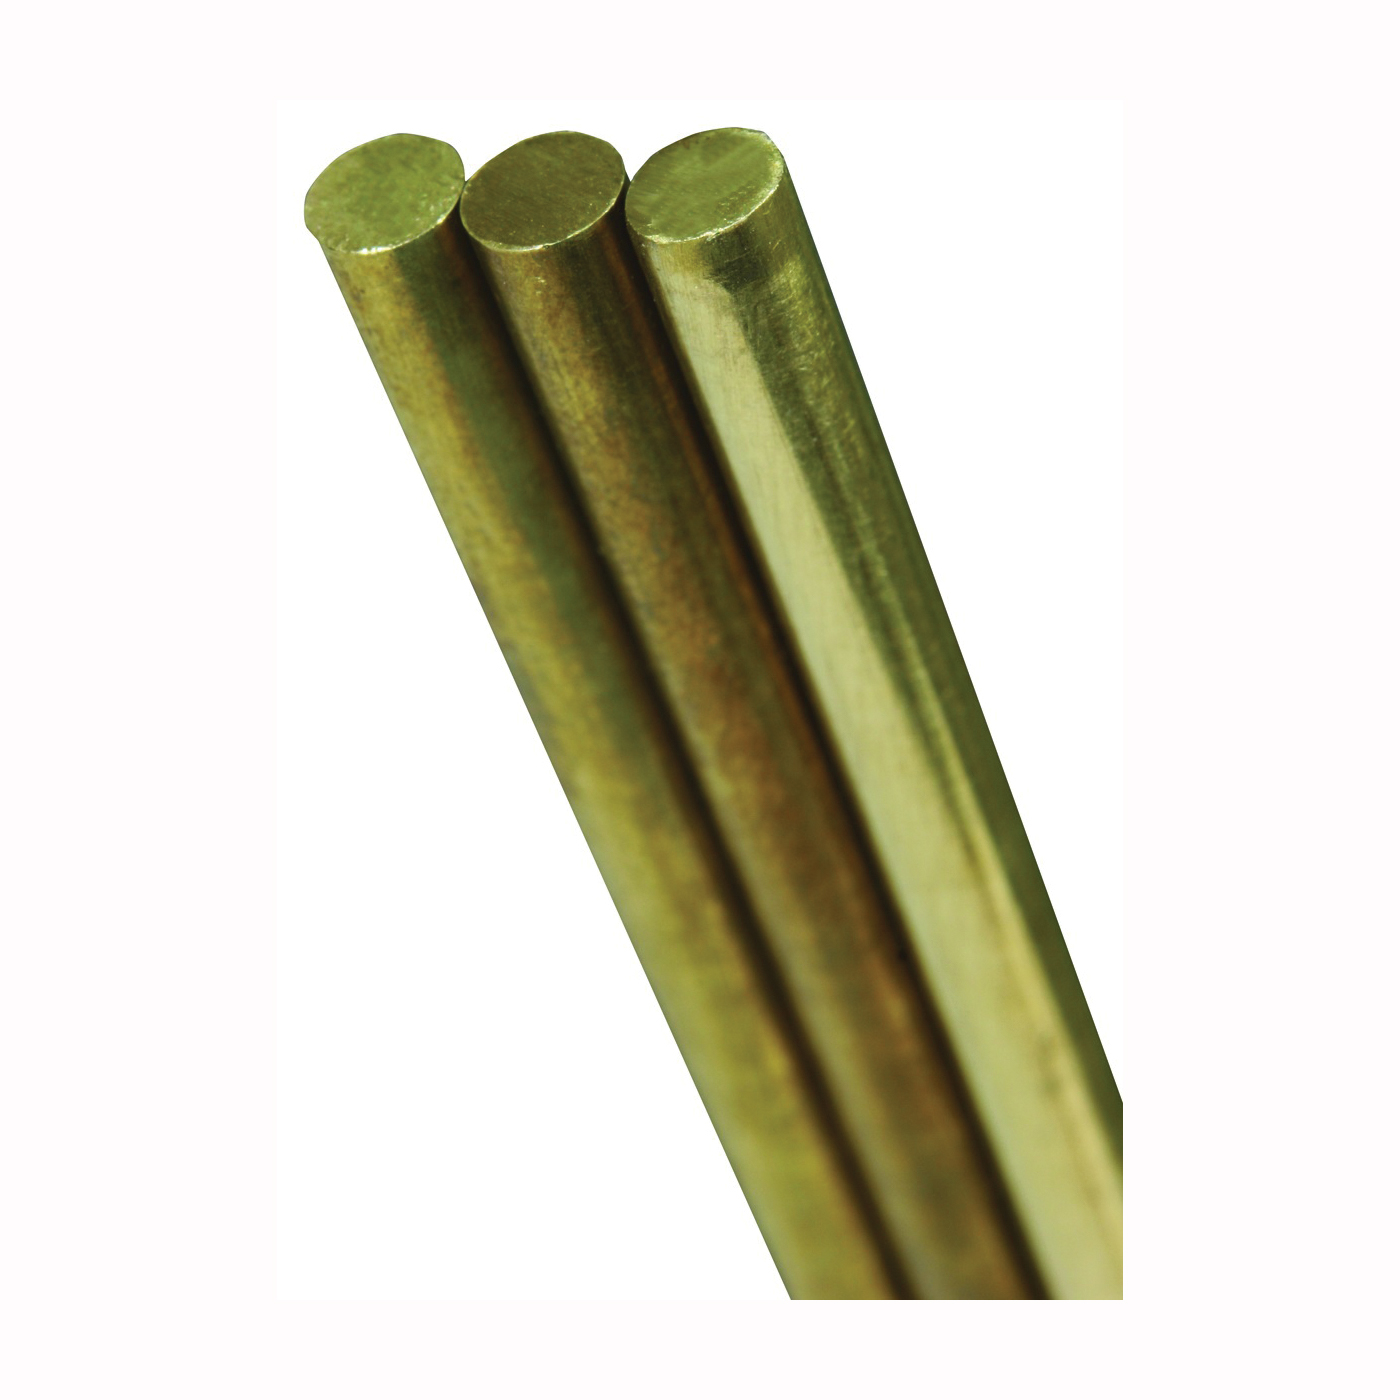 Picture of K & S 8159 Round Rod, 0.02 in Dia, 12 in L, 260 Brass, 260 Grade